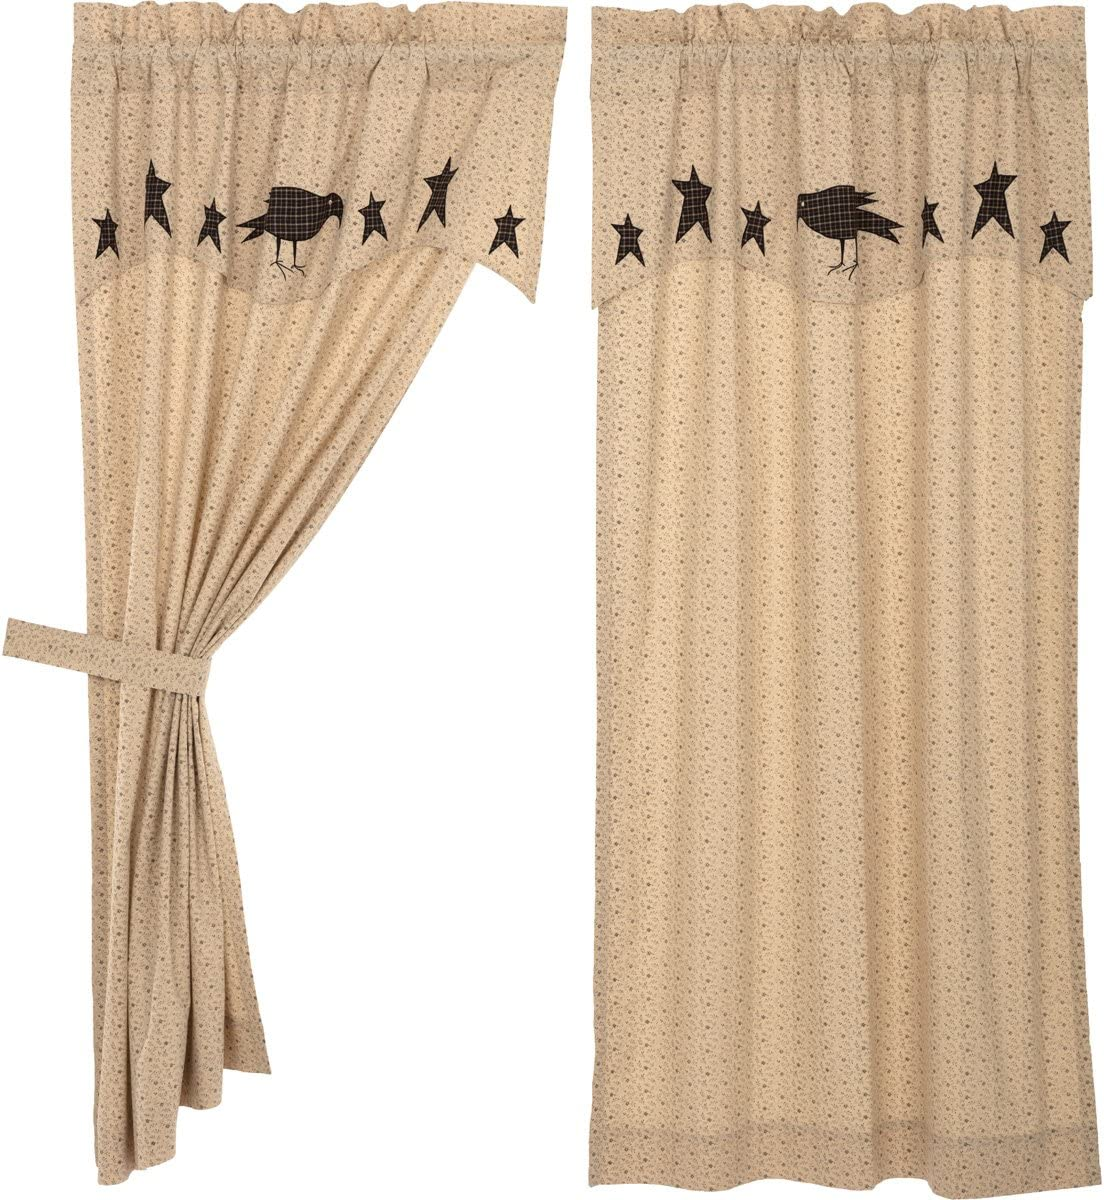 VHC Brands Kettle Grove Short Panel with Attached Applique Crow and Star Valance Set of 2 63x36 Country Curtains